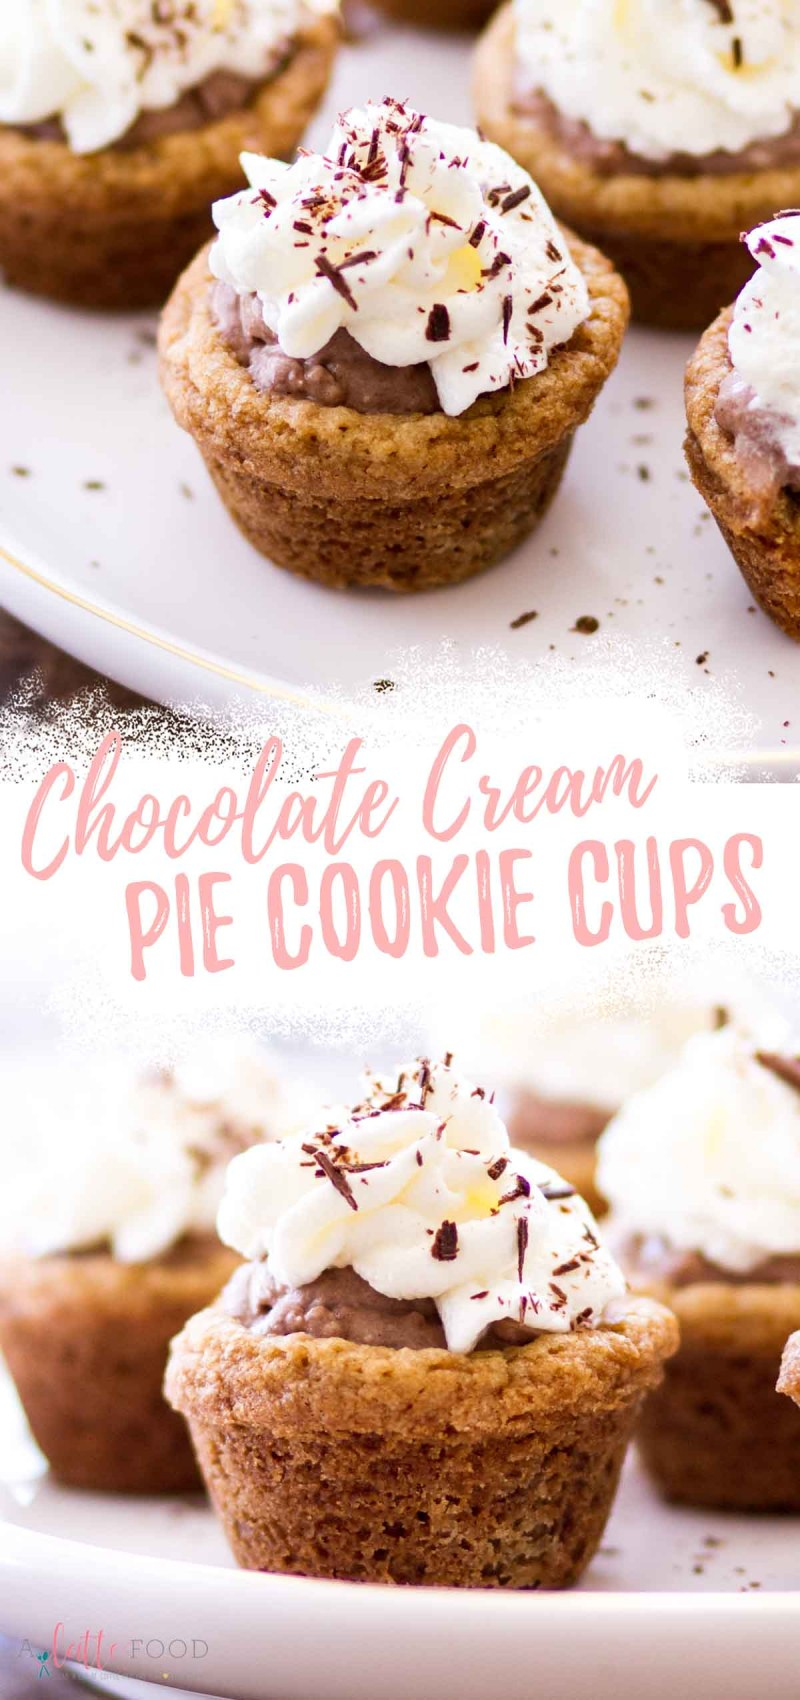 chocolate cream cookie cup with a bite missing